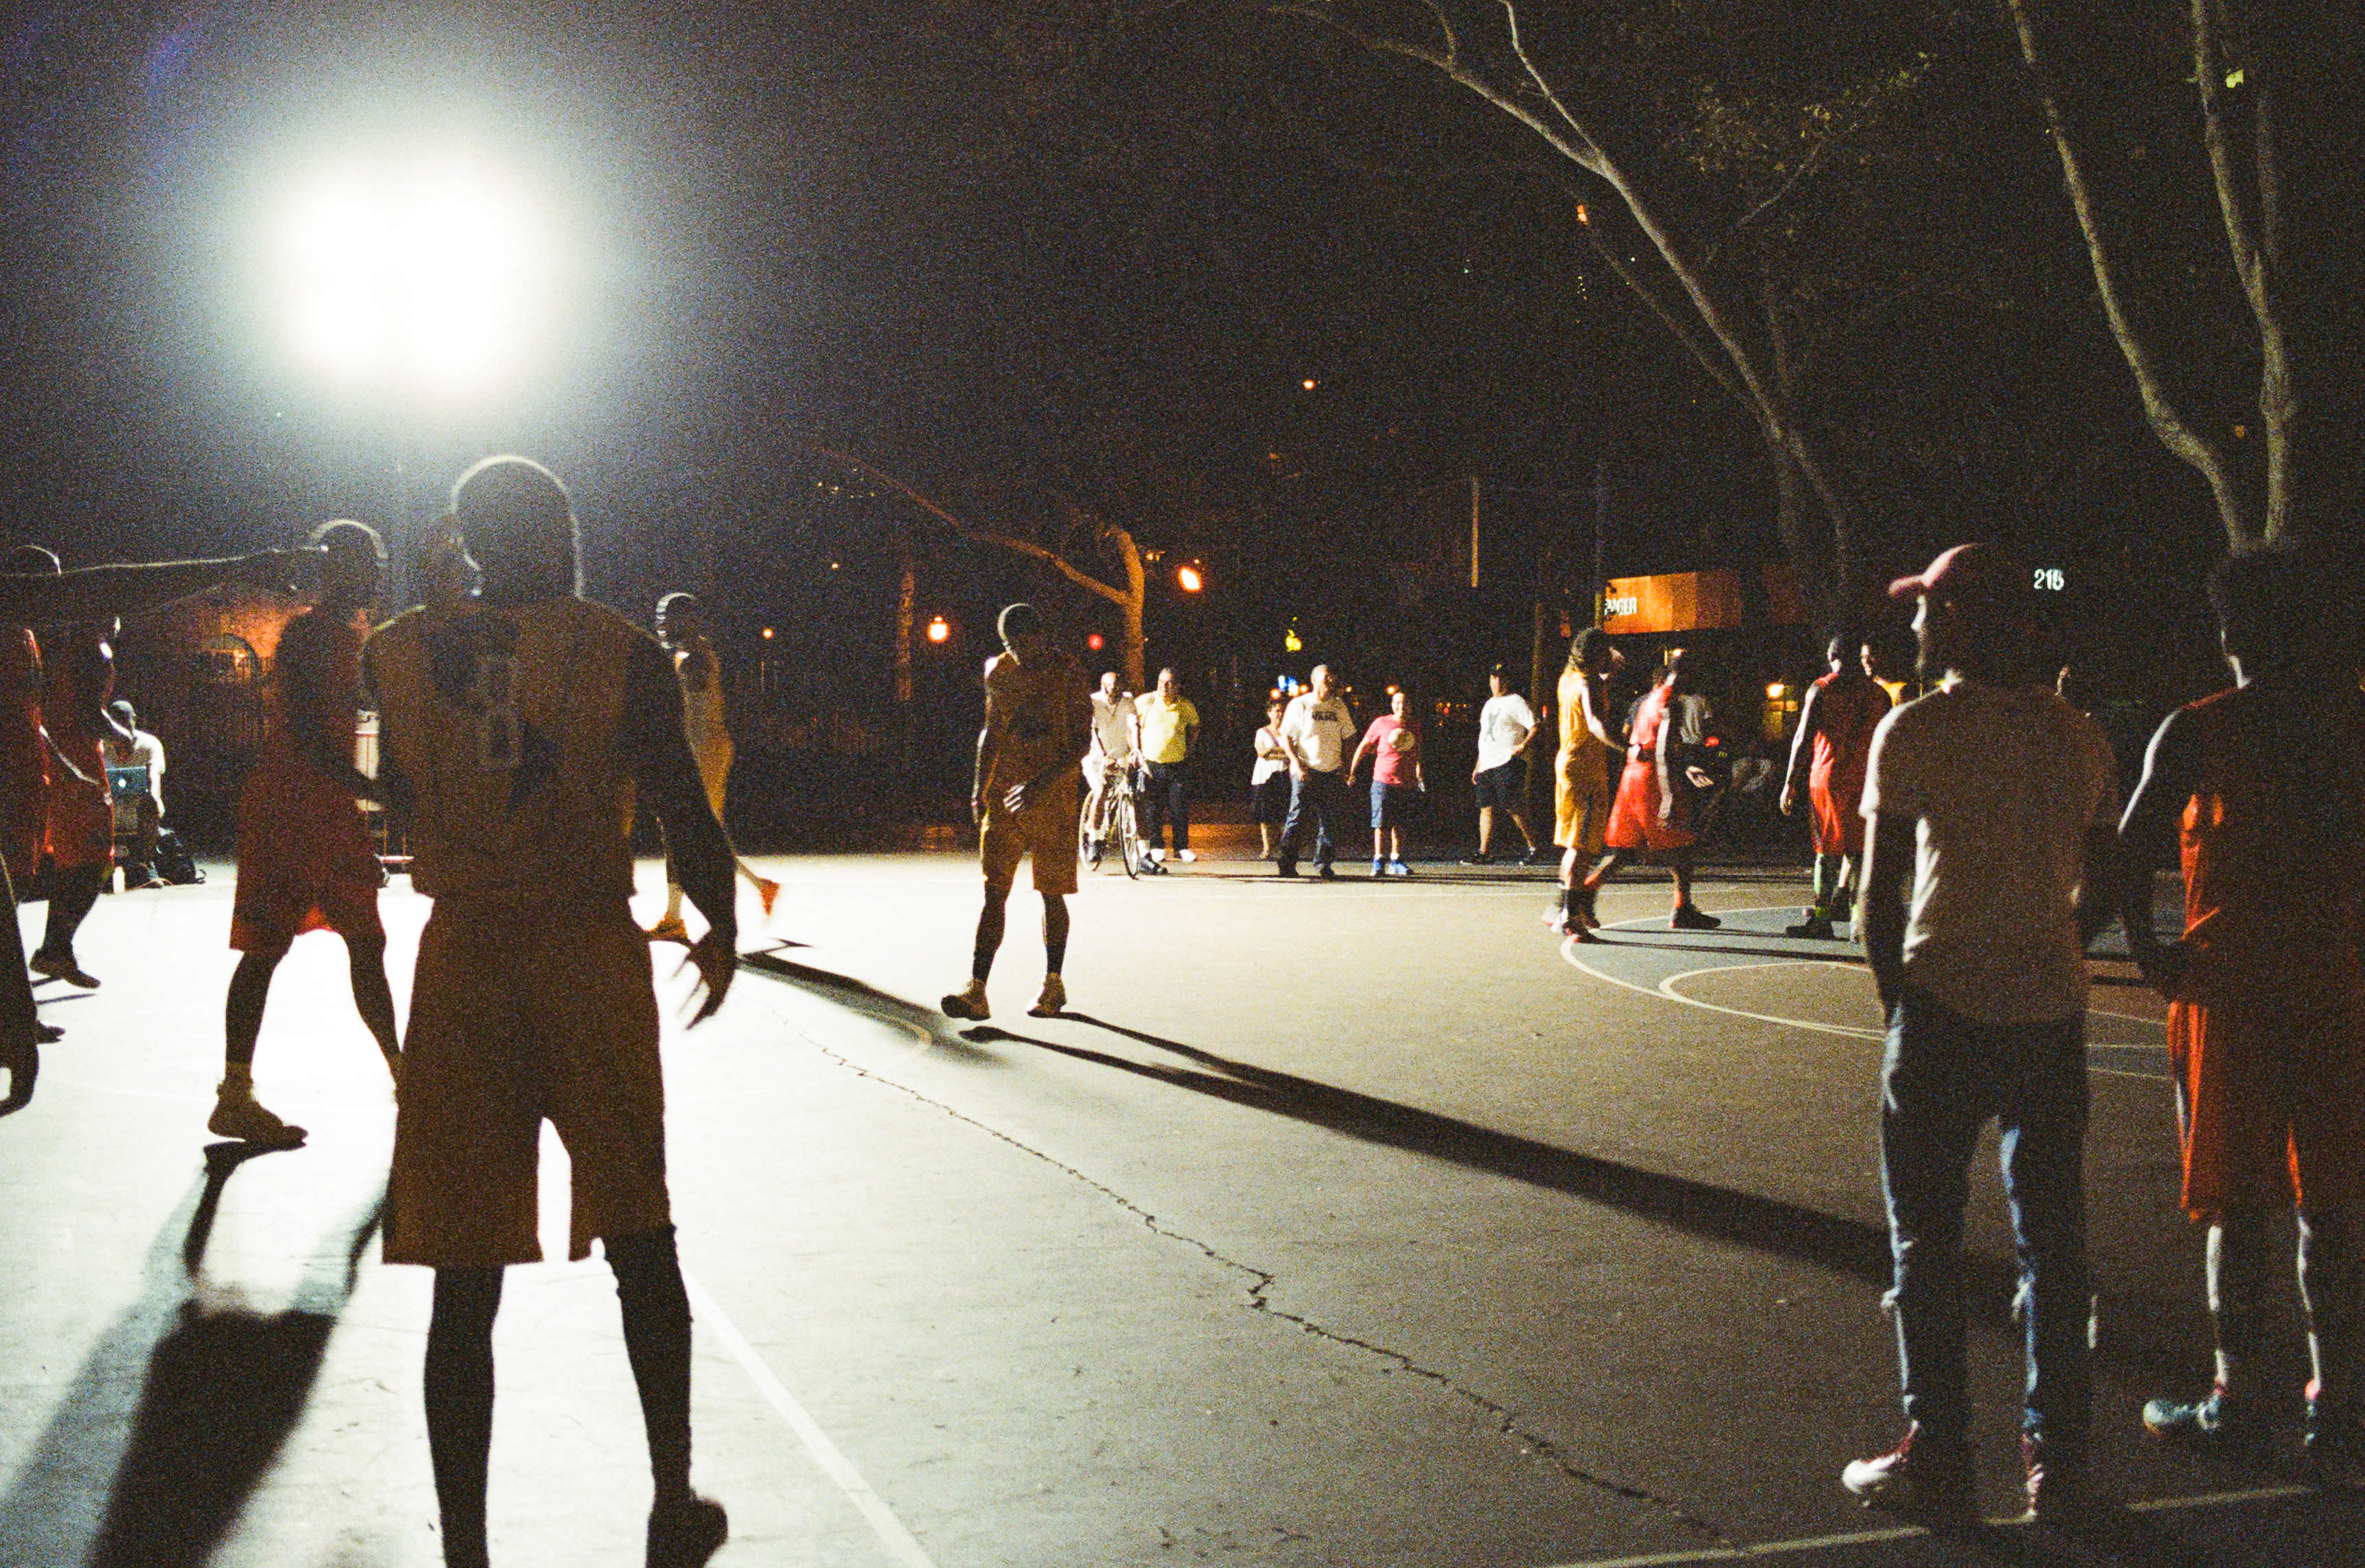 Late Night Basketball  - Lower East Side, NYC